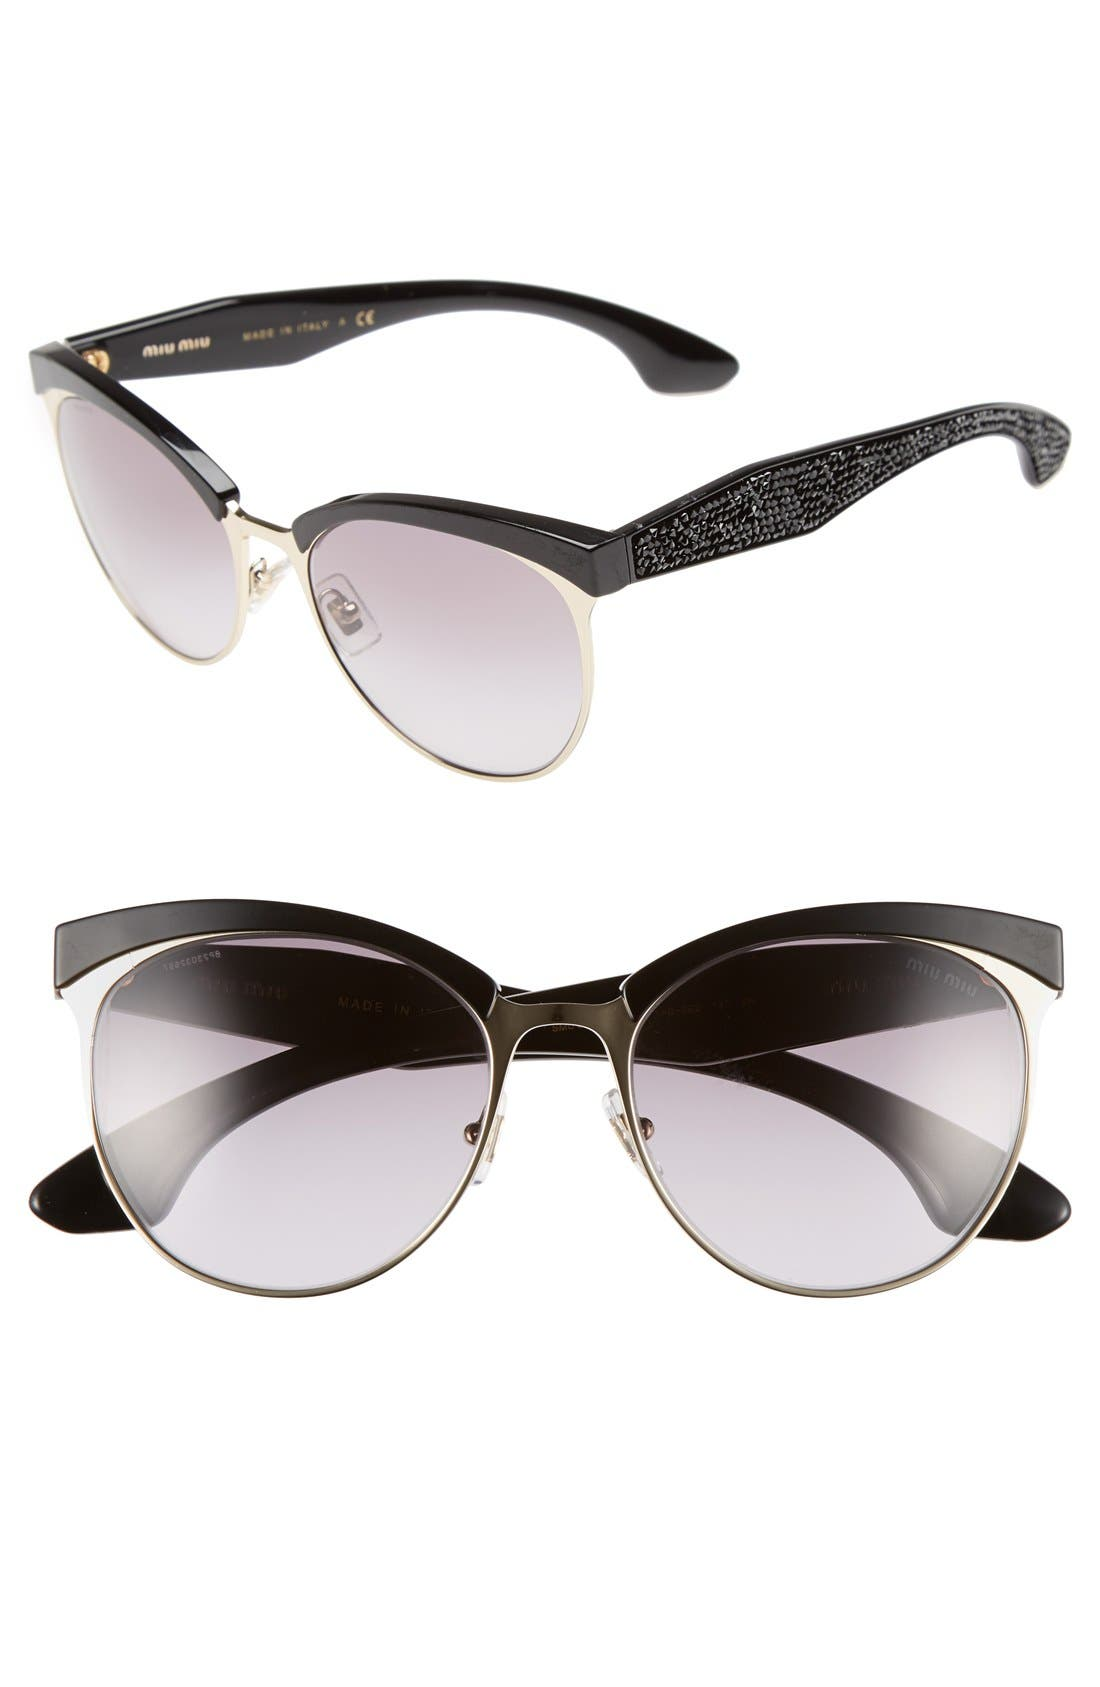 MIU MIU Miu Miu 56mm Pavé Cat Eye Sunglasses